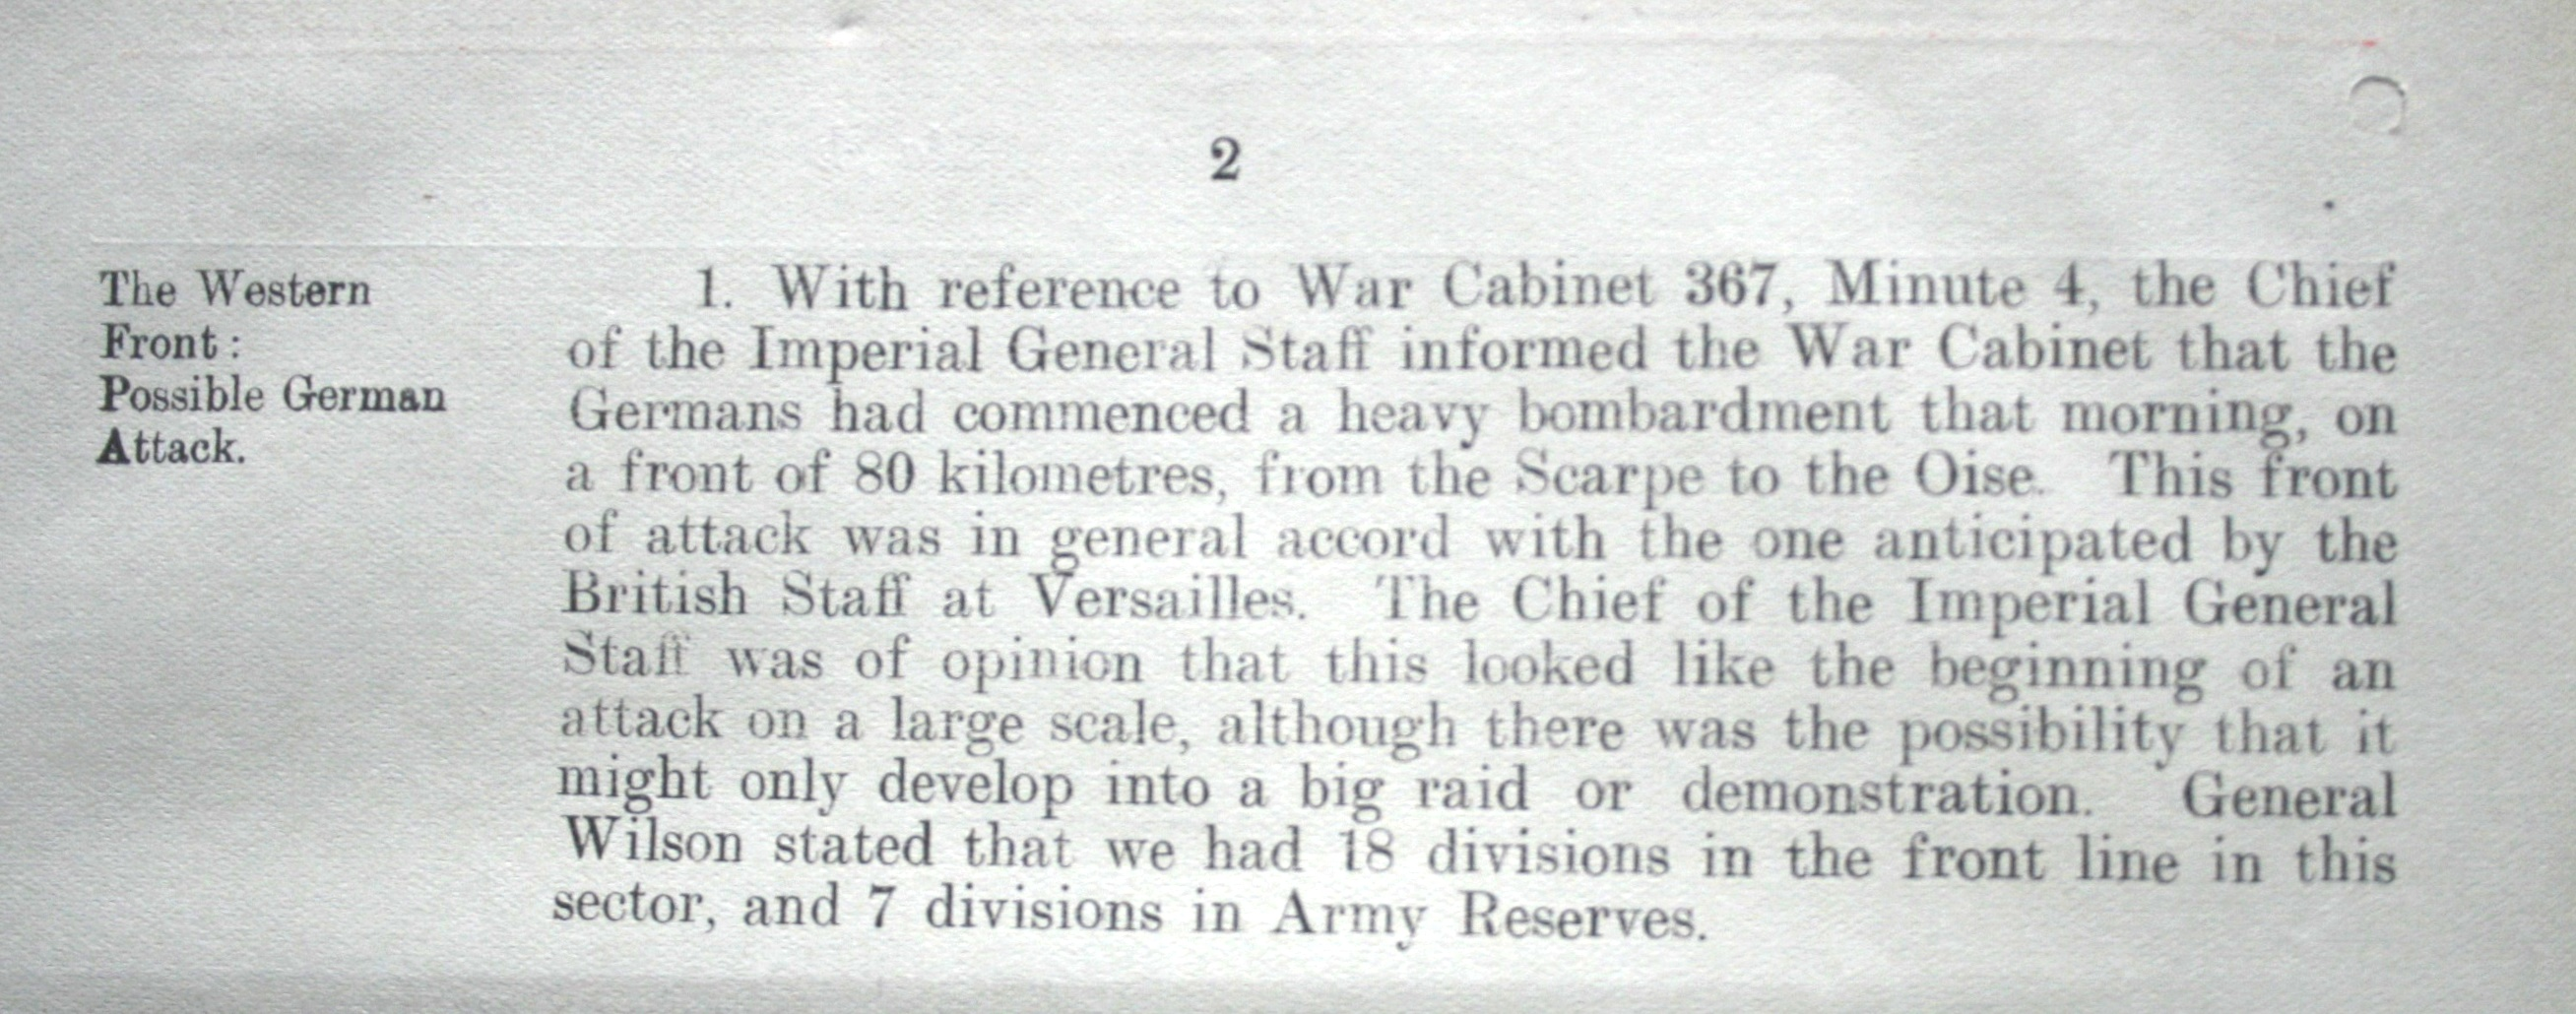 War Cabinet Meeting 369, p.2, 21 March 1918